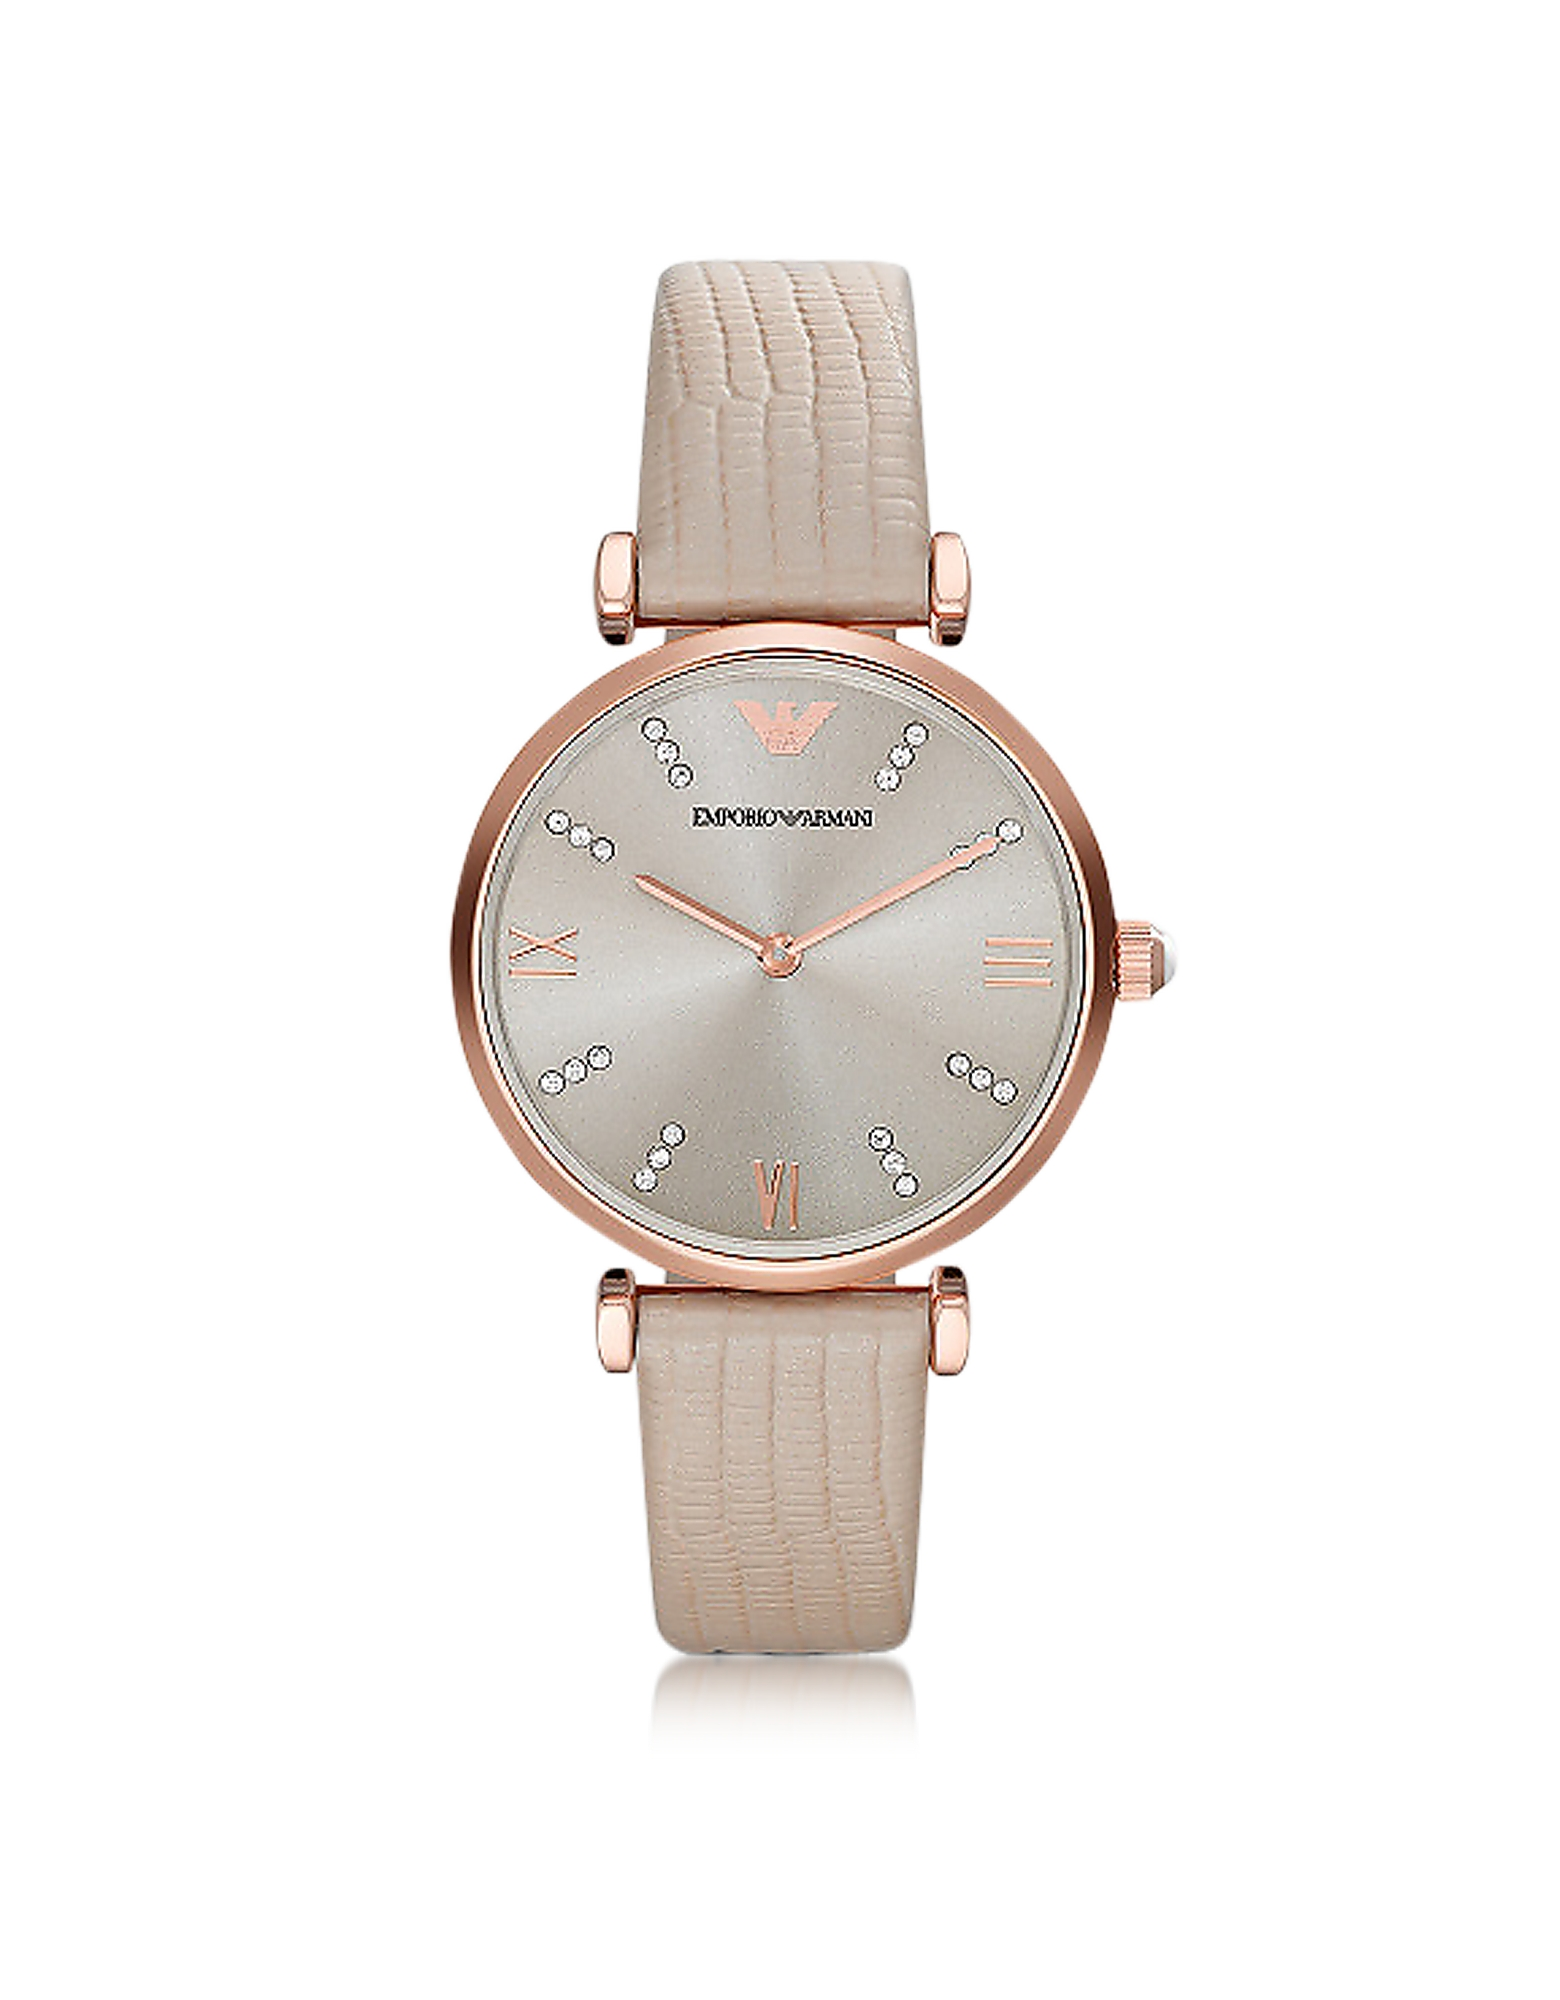 T-Bar Rose gold-tone PVD Stainless Steel Women's Quartz Watch w/Leather Strap от Forzieri.com INT